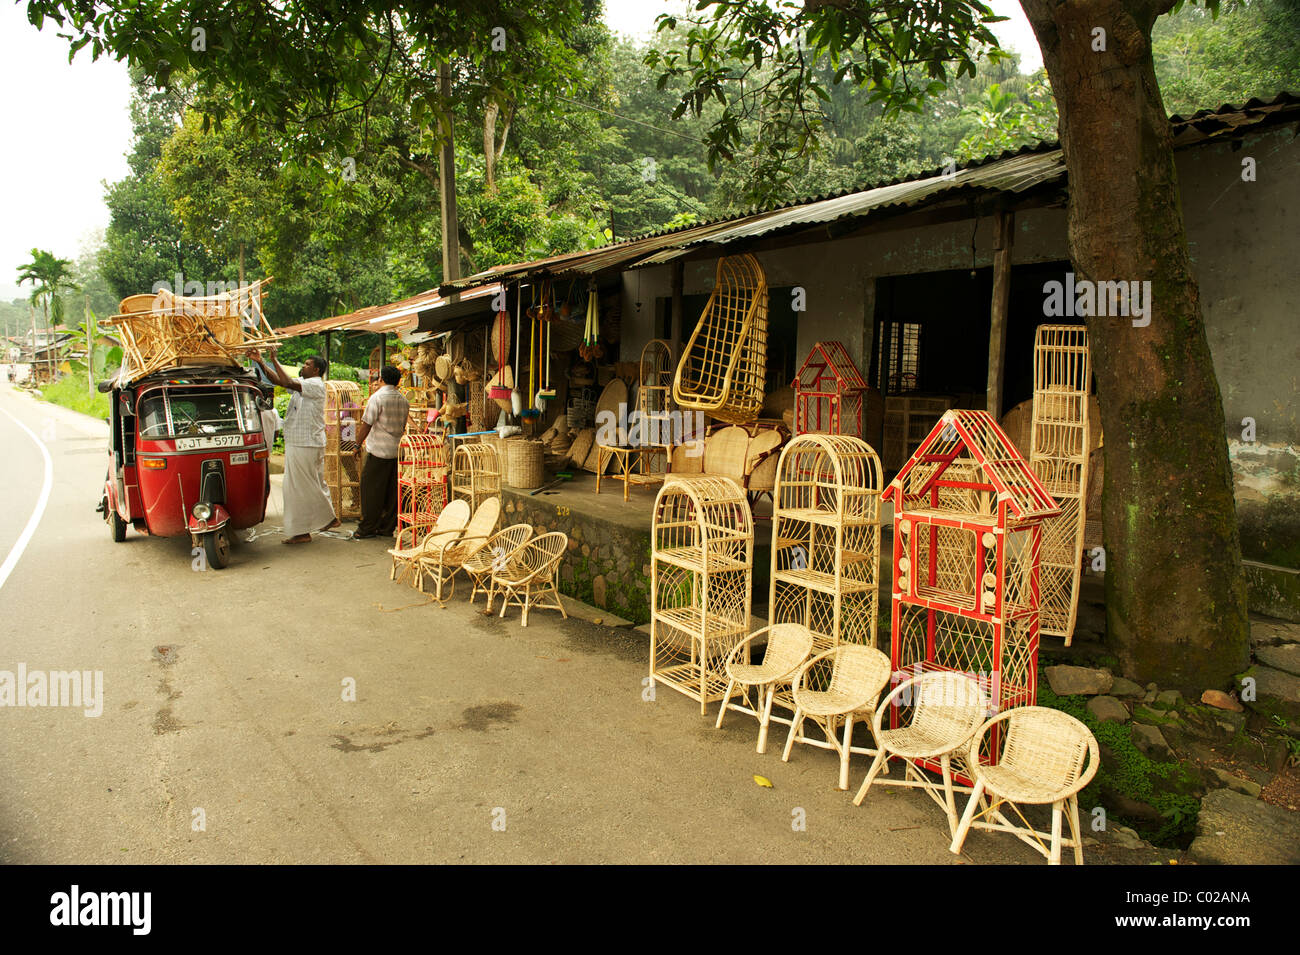 A Roadside Cane Furniture Shops, Sri Lanka   Stock Image